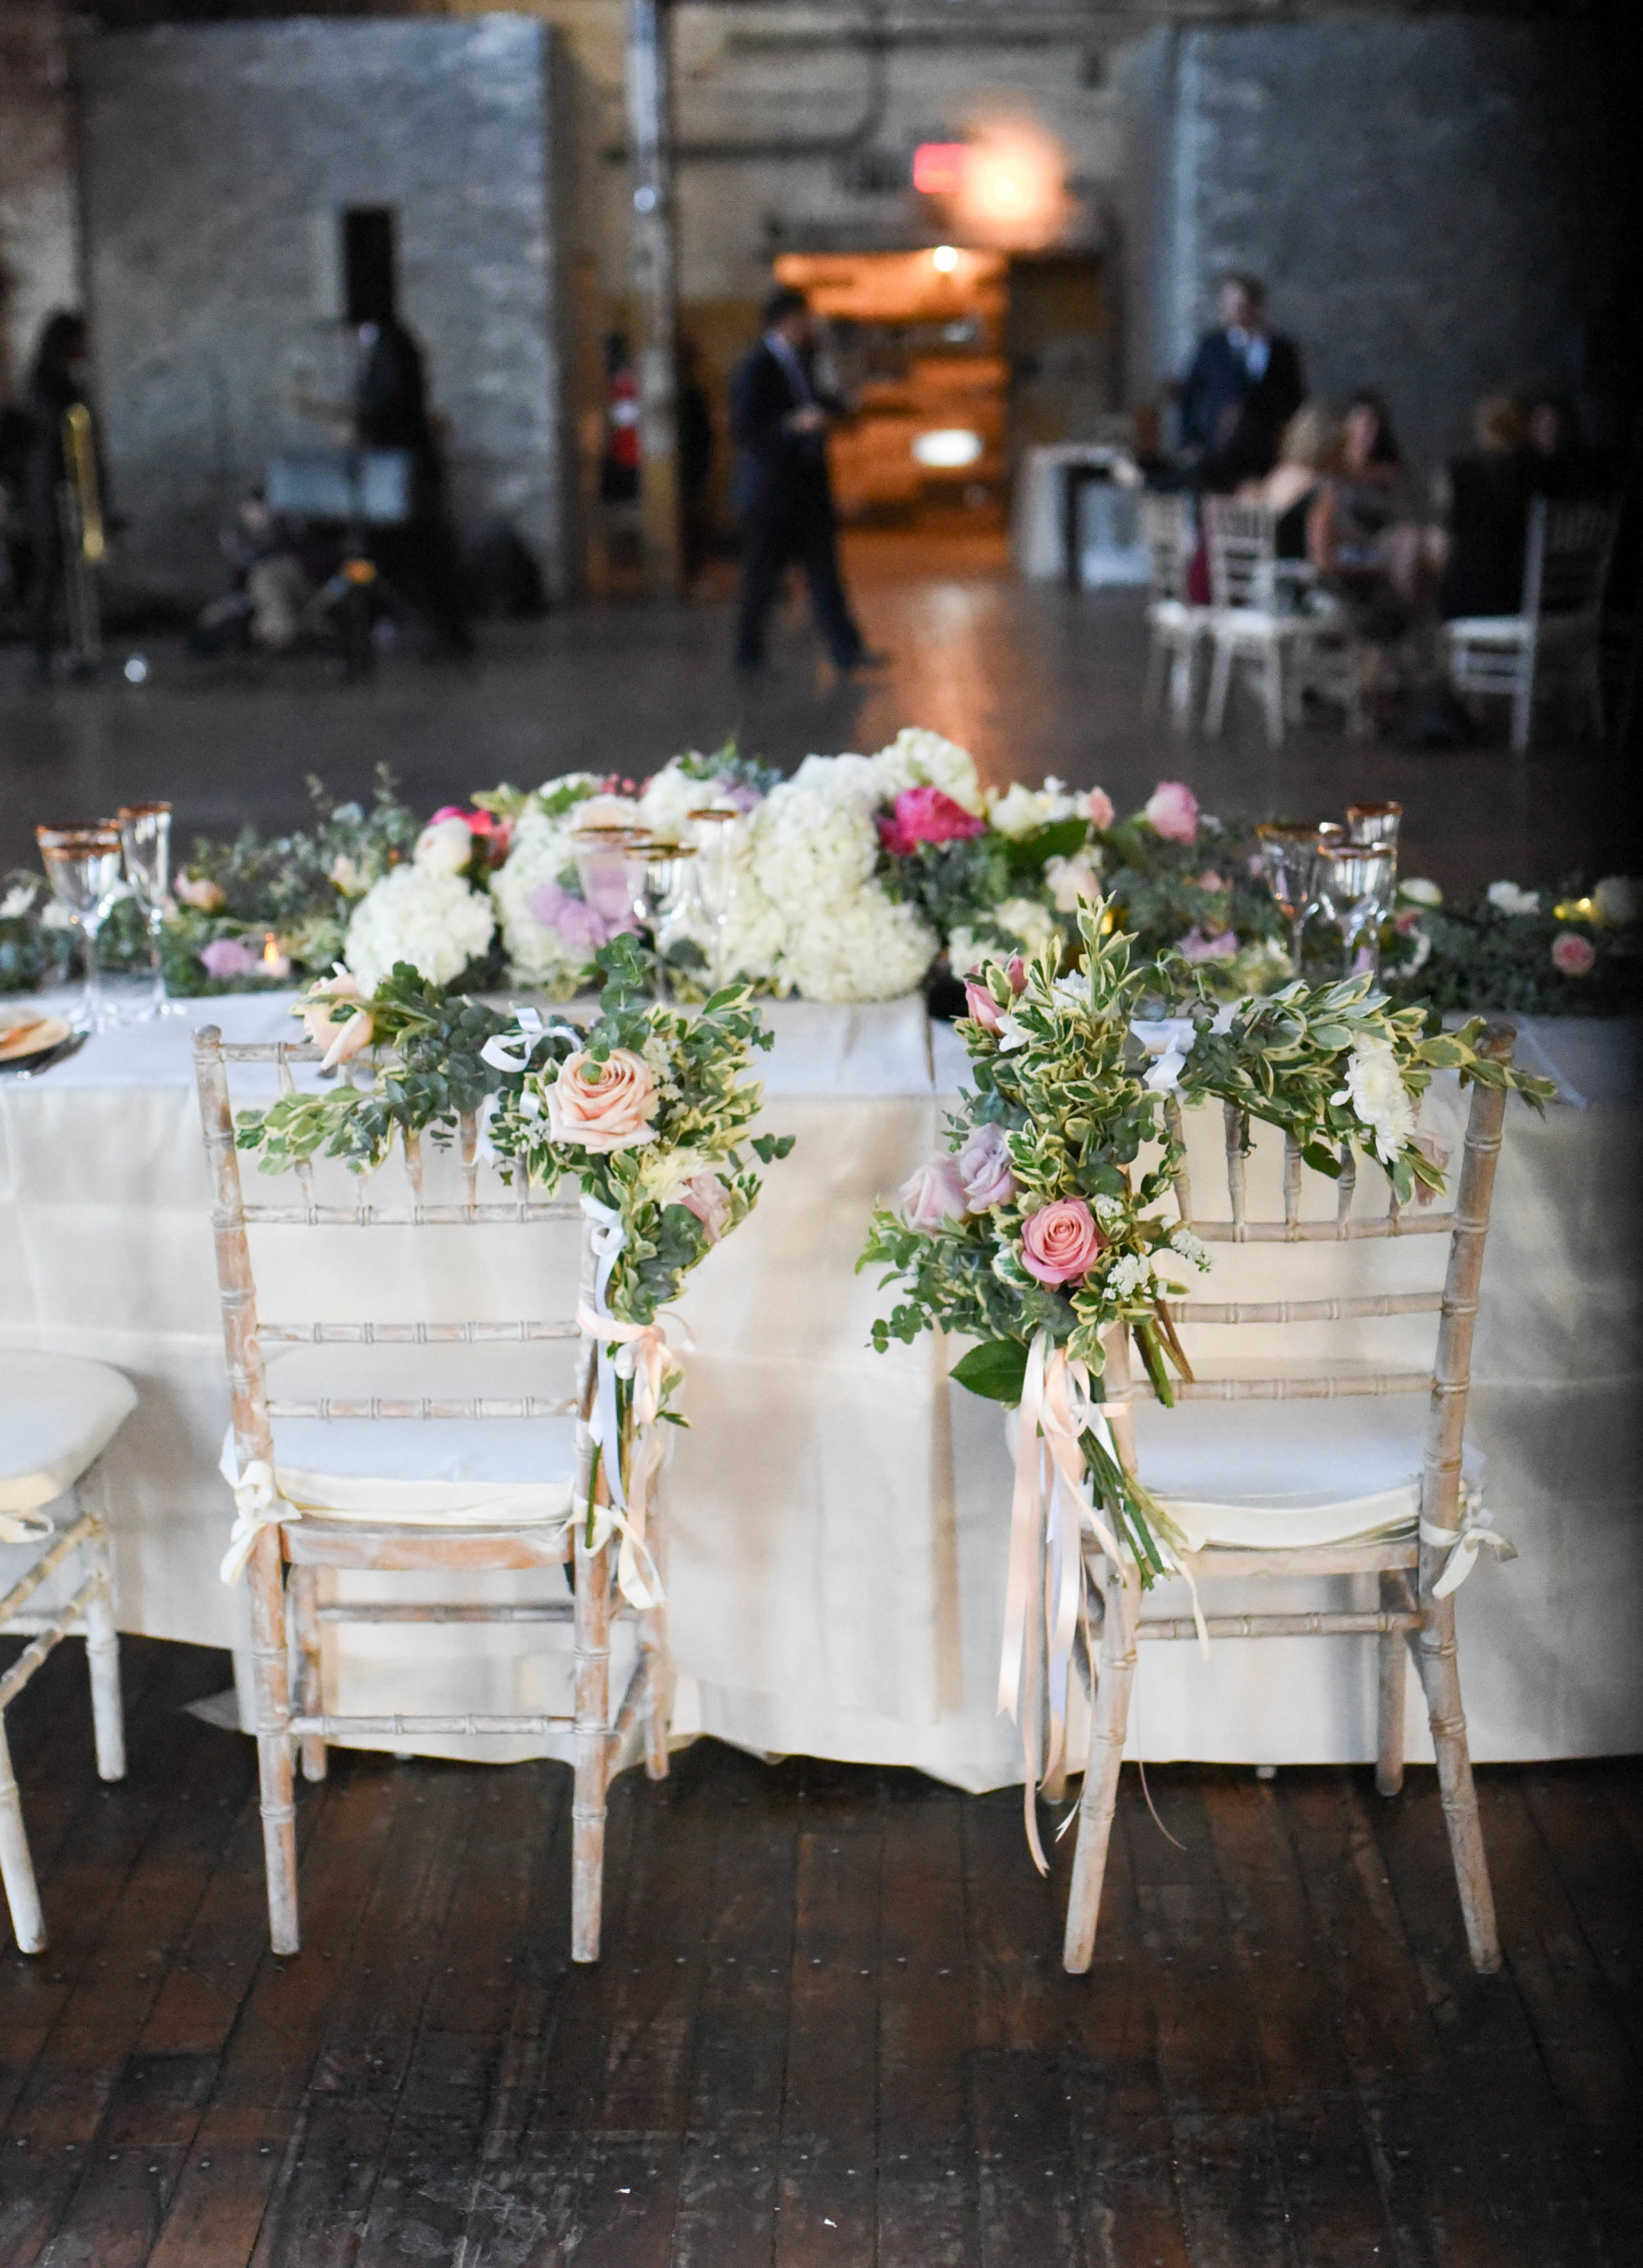 The rose chair decorations pair nicely with the table garland